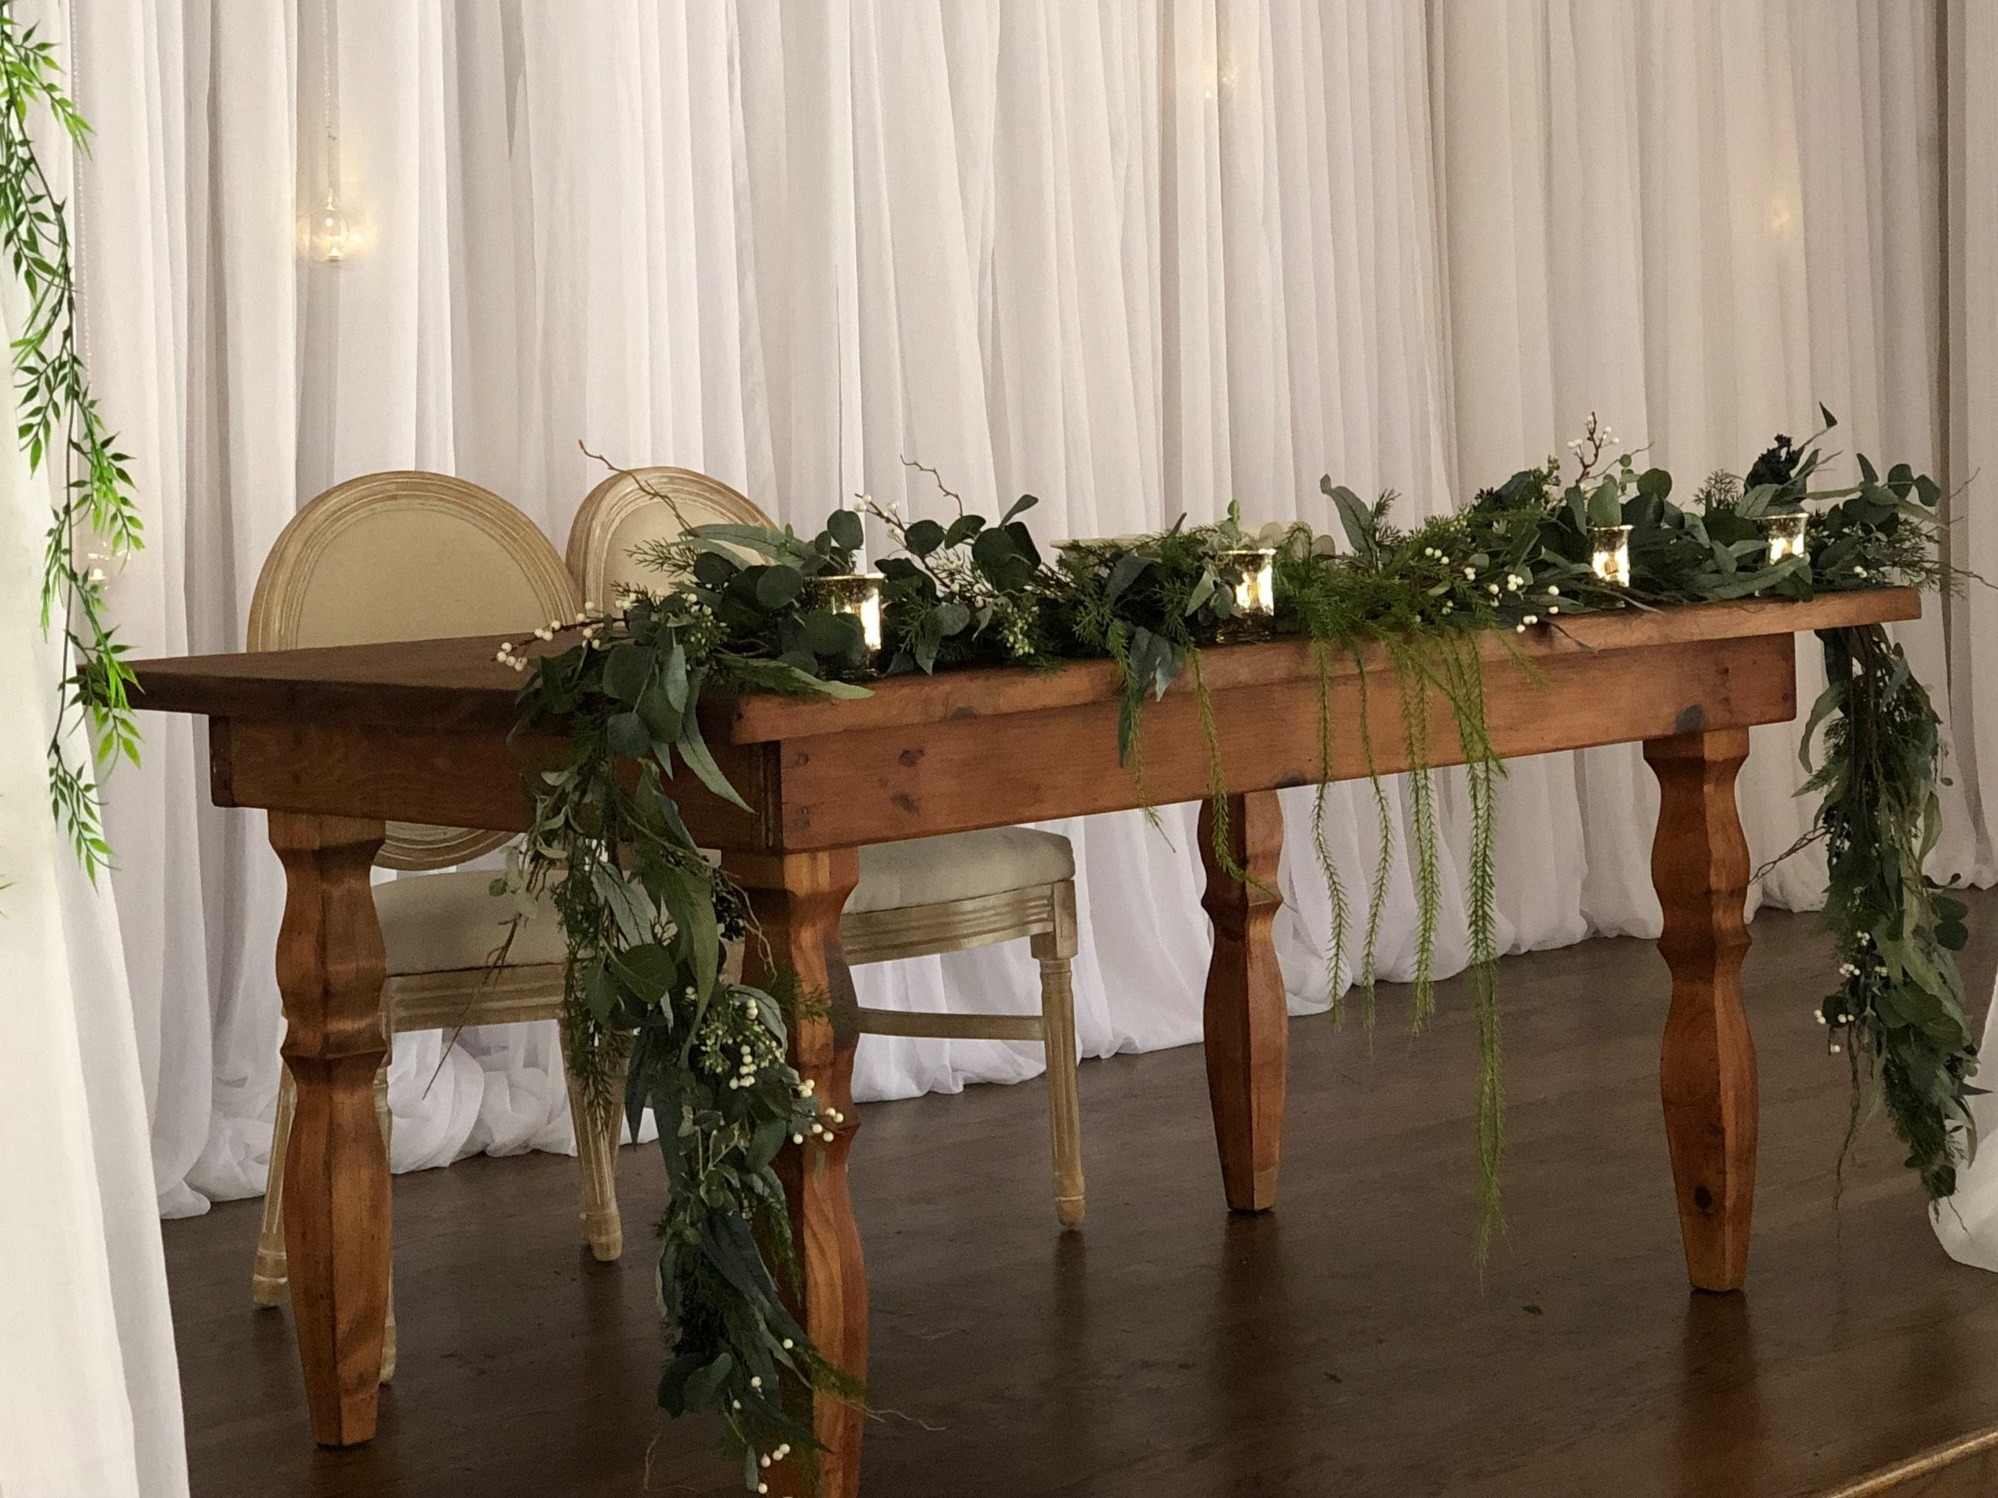 6ft Rustic Wood Table